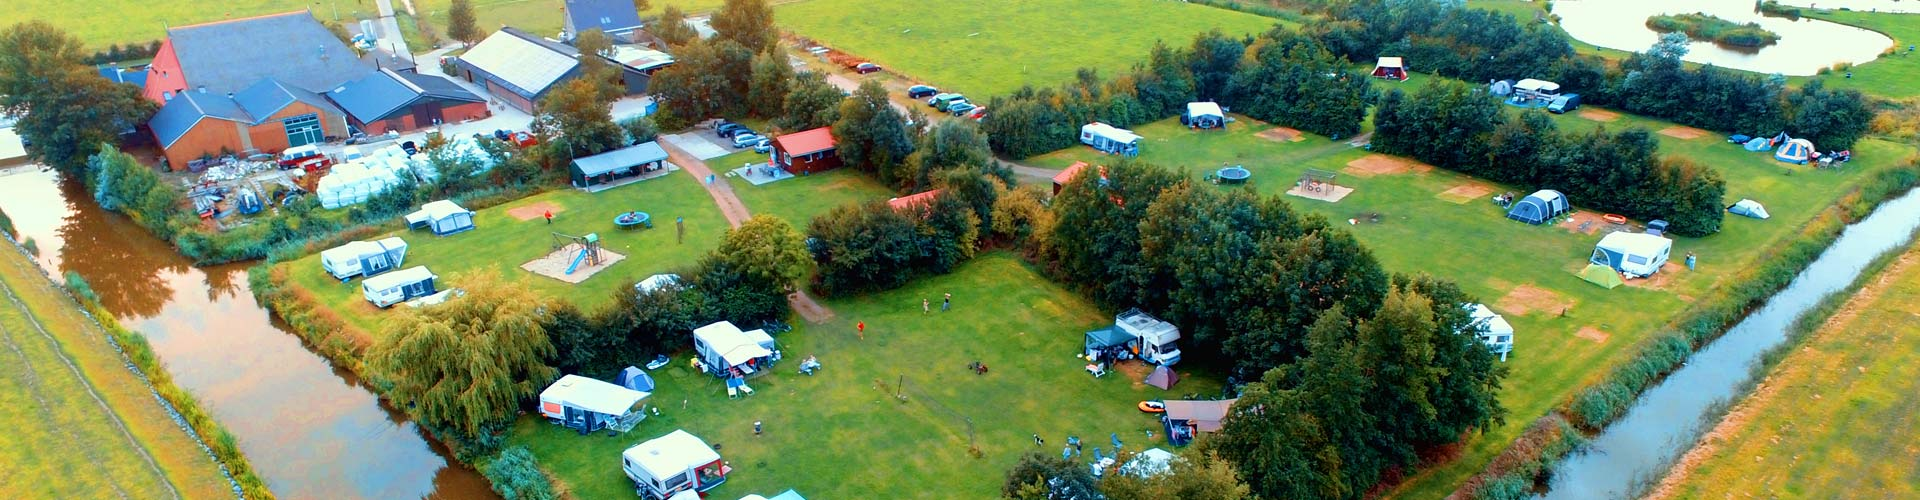 blikvaart-mini-camping-header2